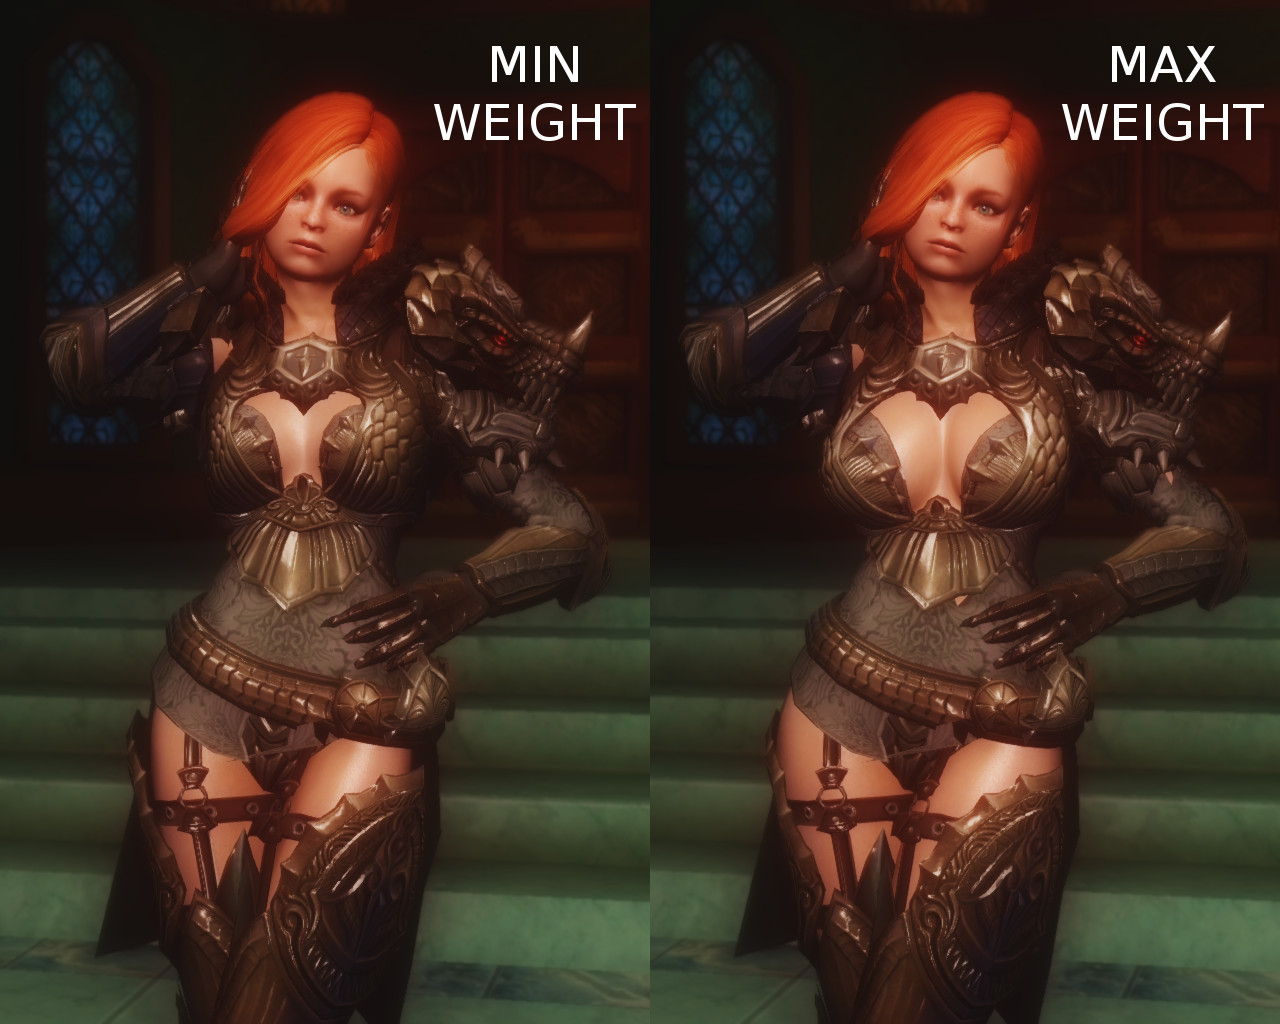 weight_comparison.jpg